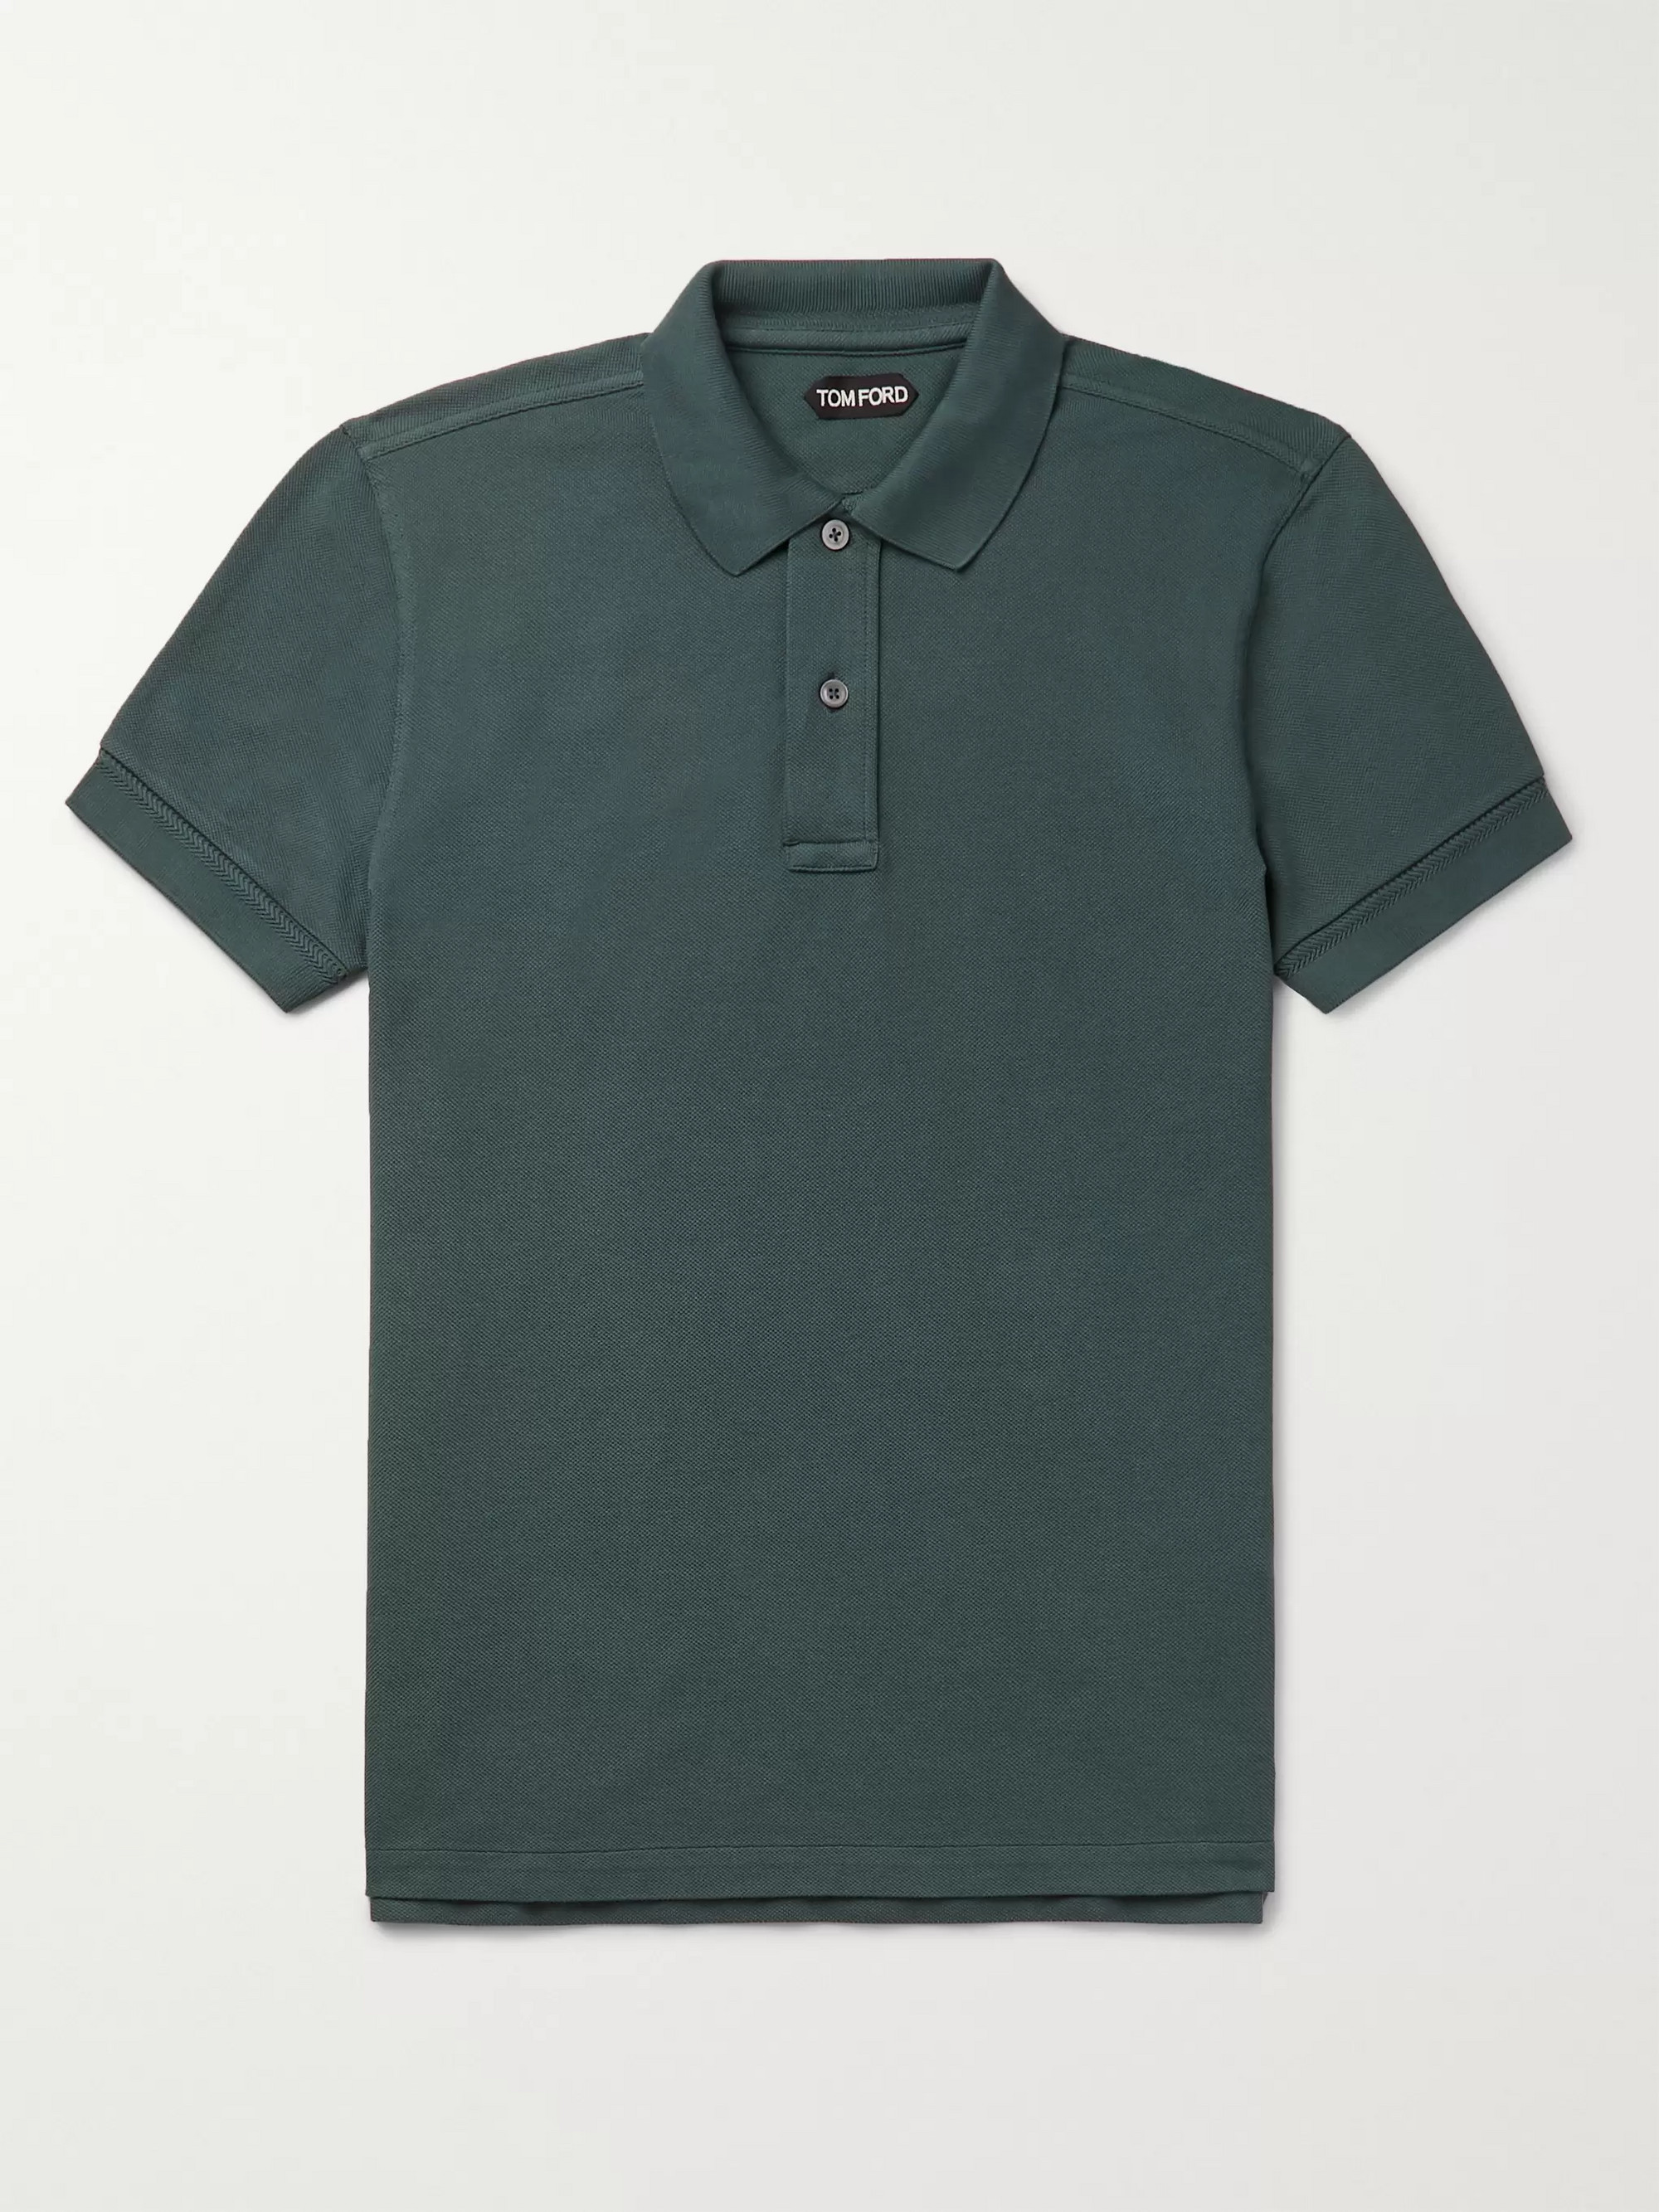 56aca5aaa7e69 Teal Slim-Fit Garment-Dyed Cotton-Piqué Polo Shirt   TOM FORD   MR ...